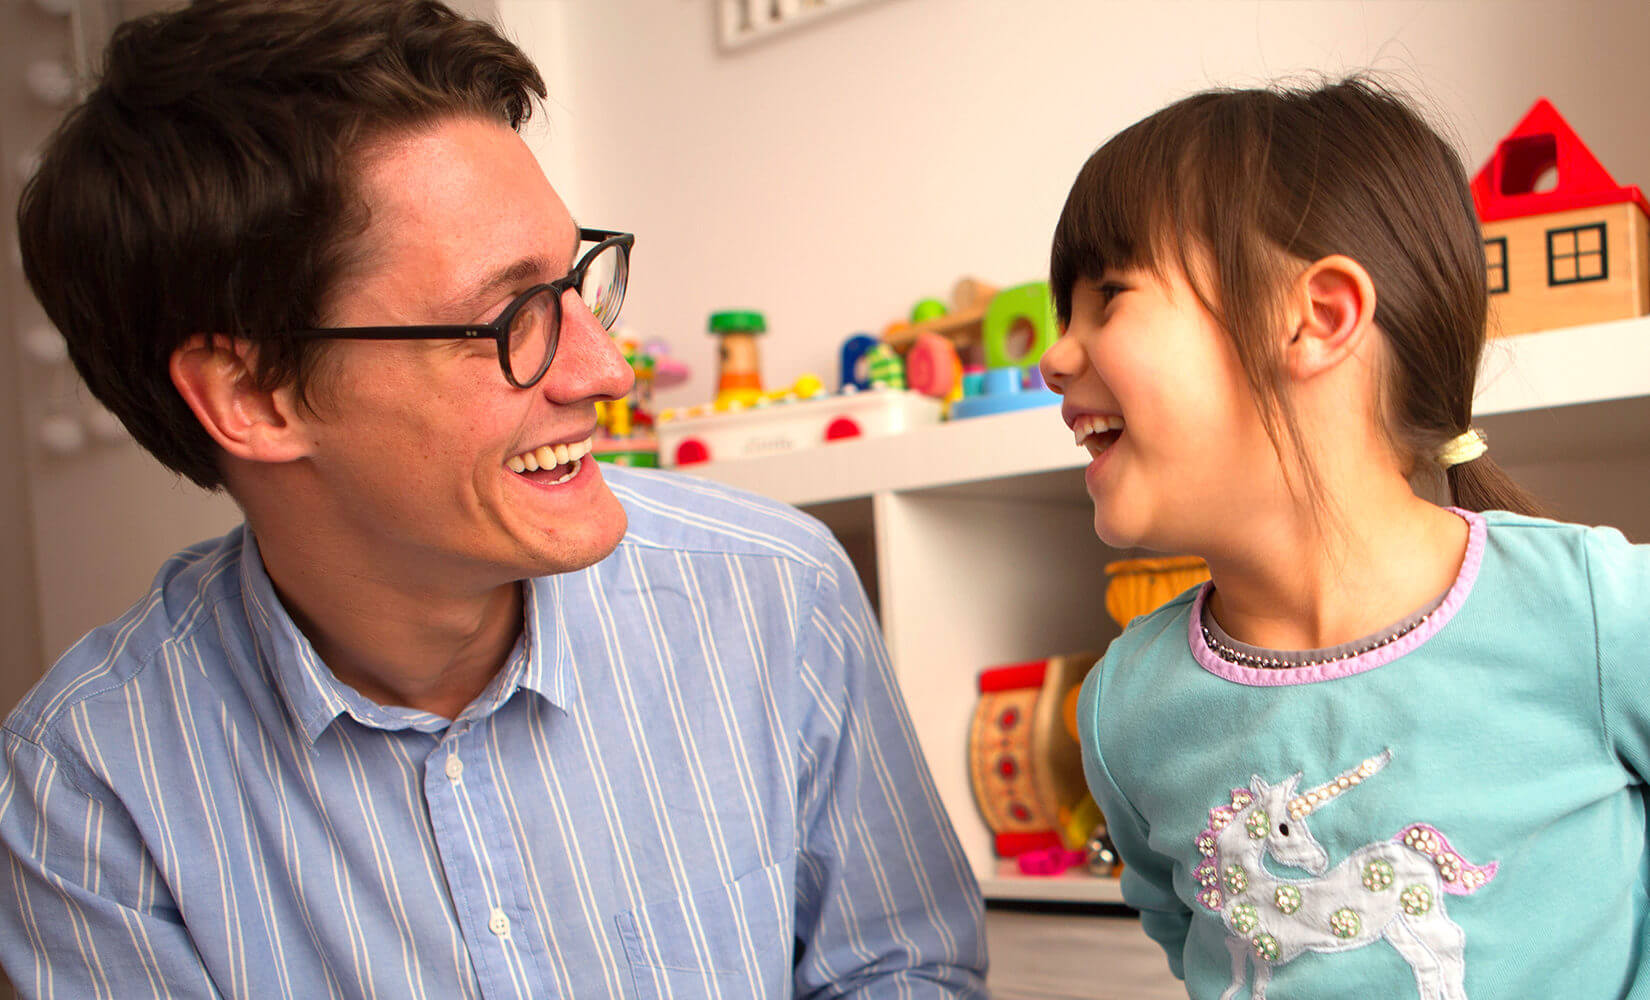 home-schooling tutor smiling at young girl